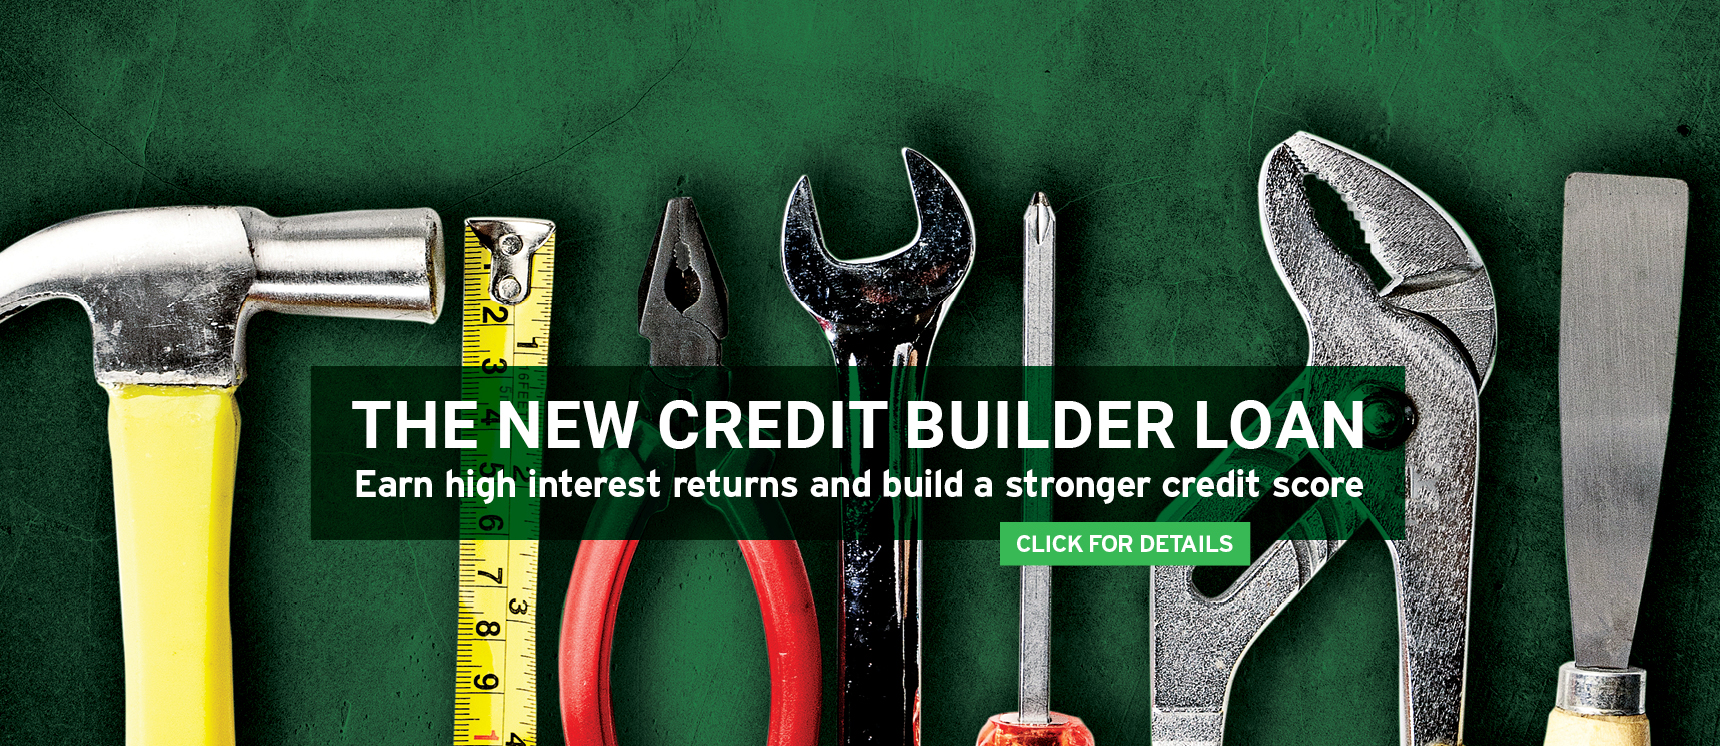 Set of tools featuring a click through to get details about the new credit builder loan